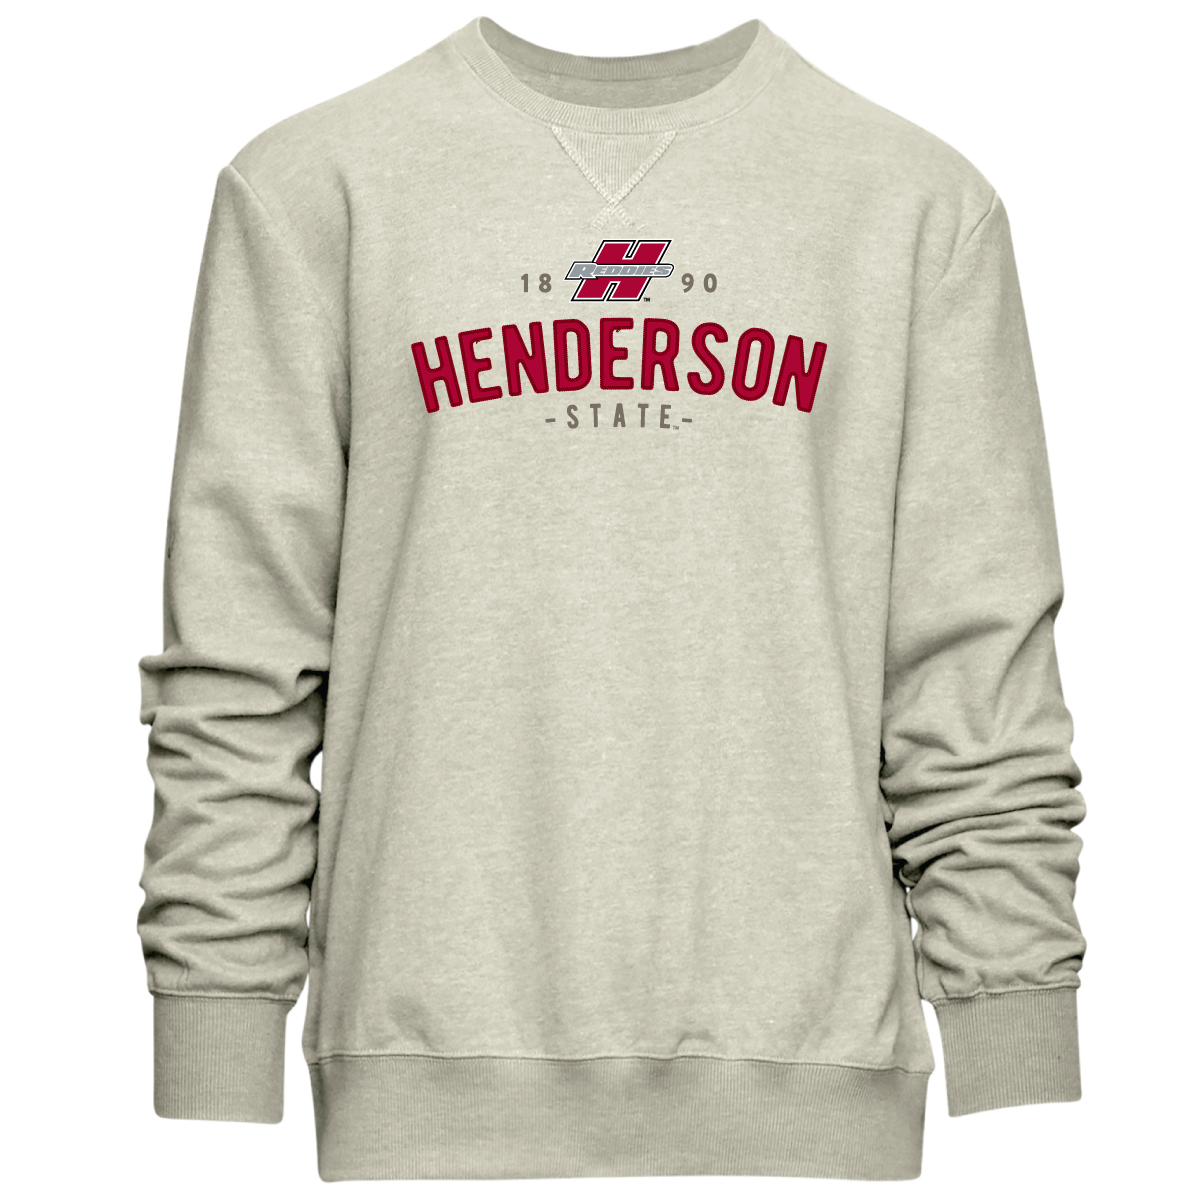 Henderson State All Star Crew Sweatshirt